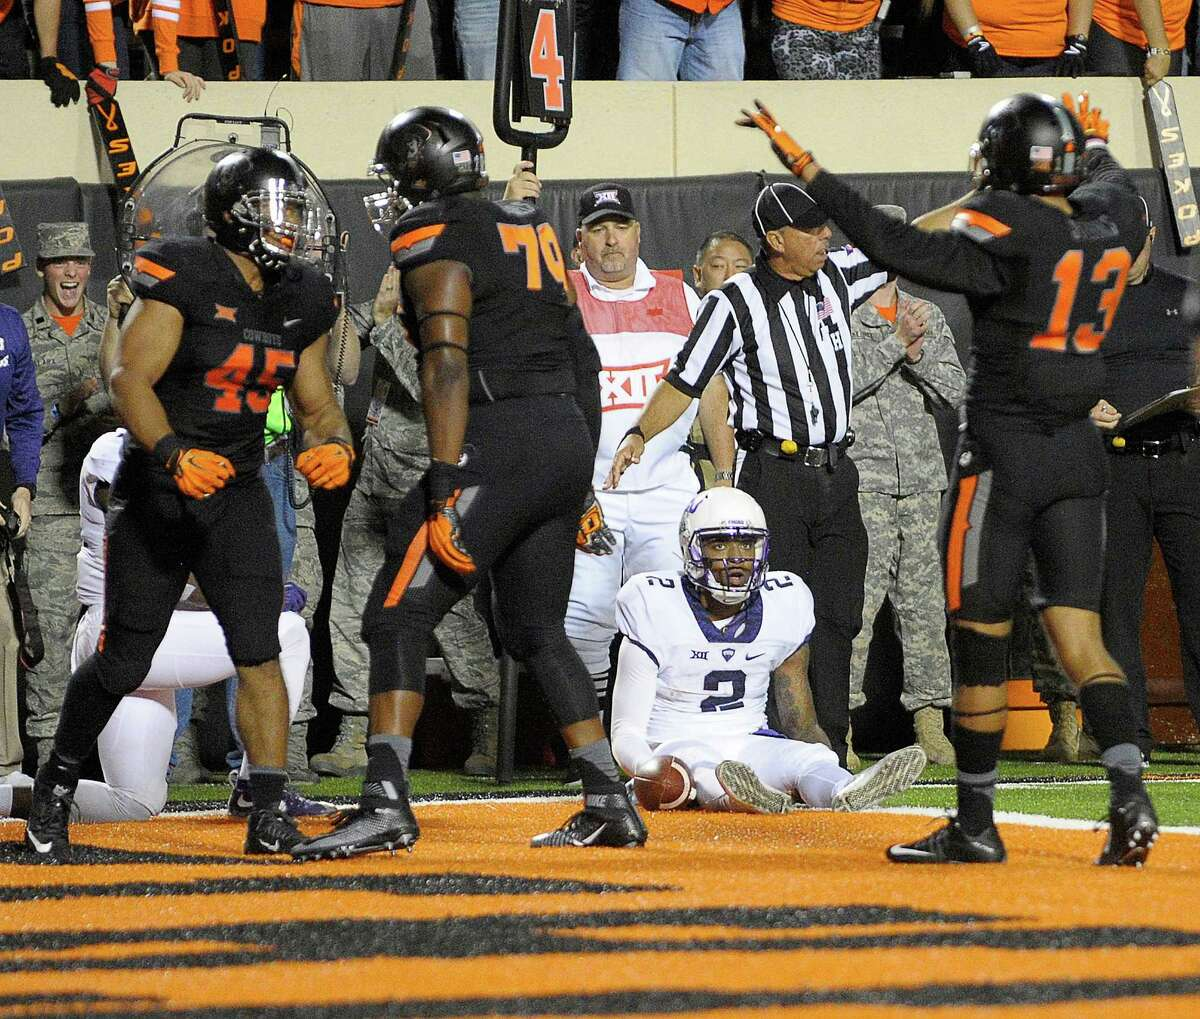 TCU quarterback Trevone Boykin (2) is stopped short of the end zone and the ball goes over to Oklahoma State in the fourth quarter at Boone Pickens Stadium in Stillwater, Okla., on Saturday, Nov. 7, 2015. The host Cowboys won, 49-29. (Max Faulkner/Fort Worth Star-Telegram/TNS)